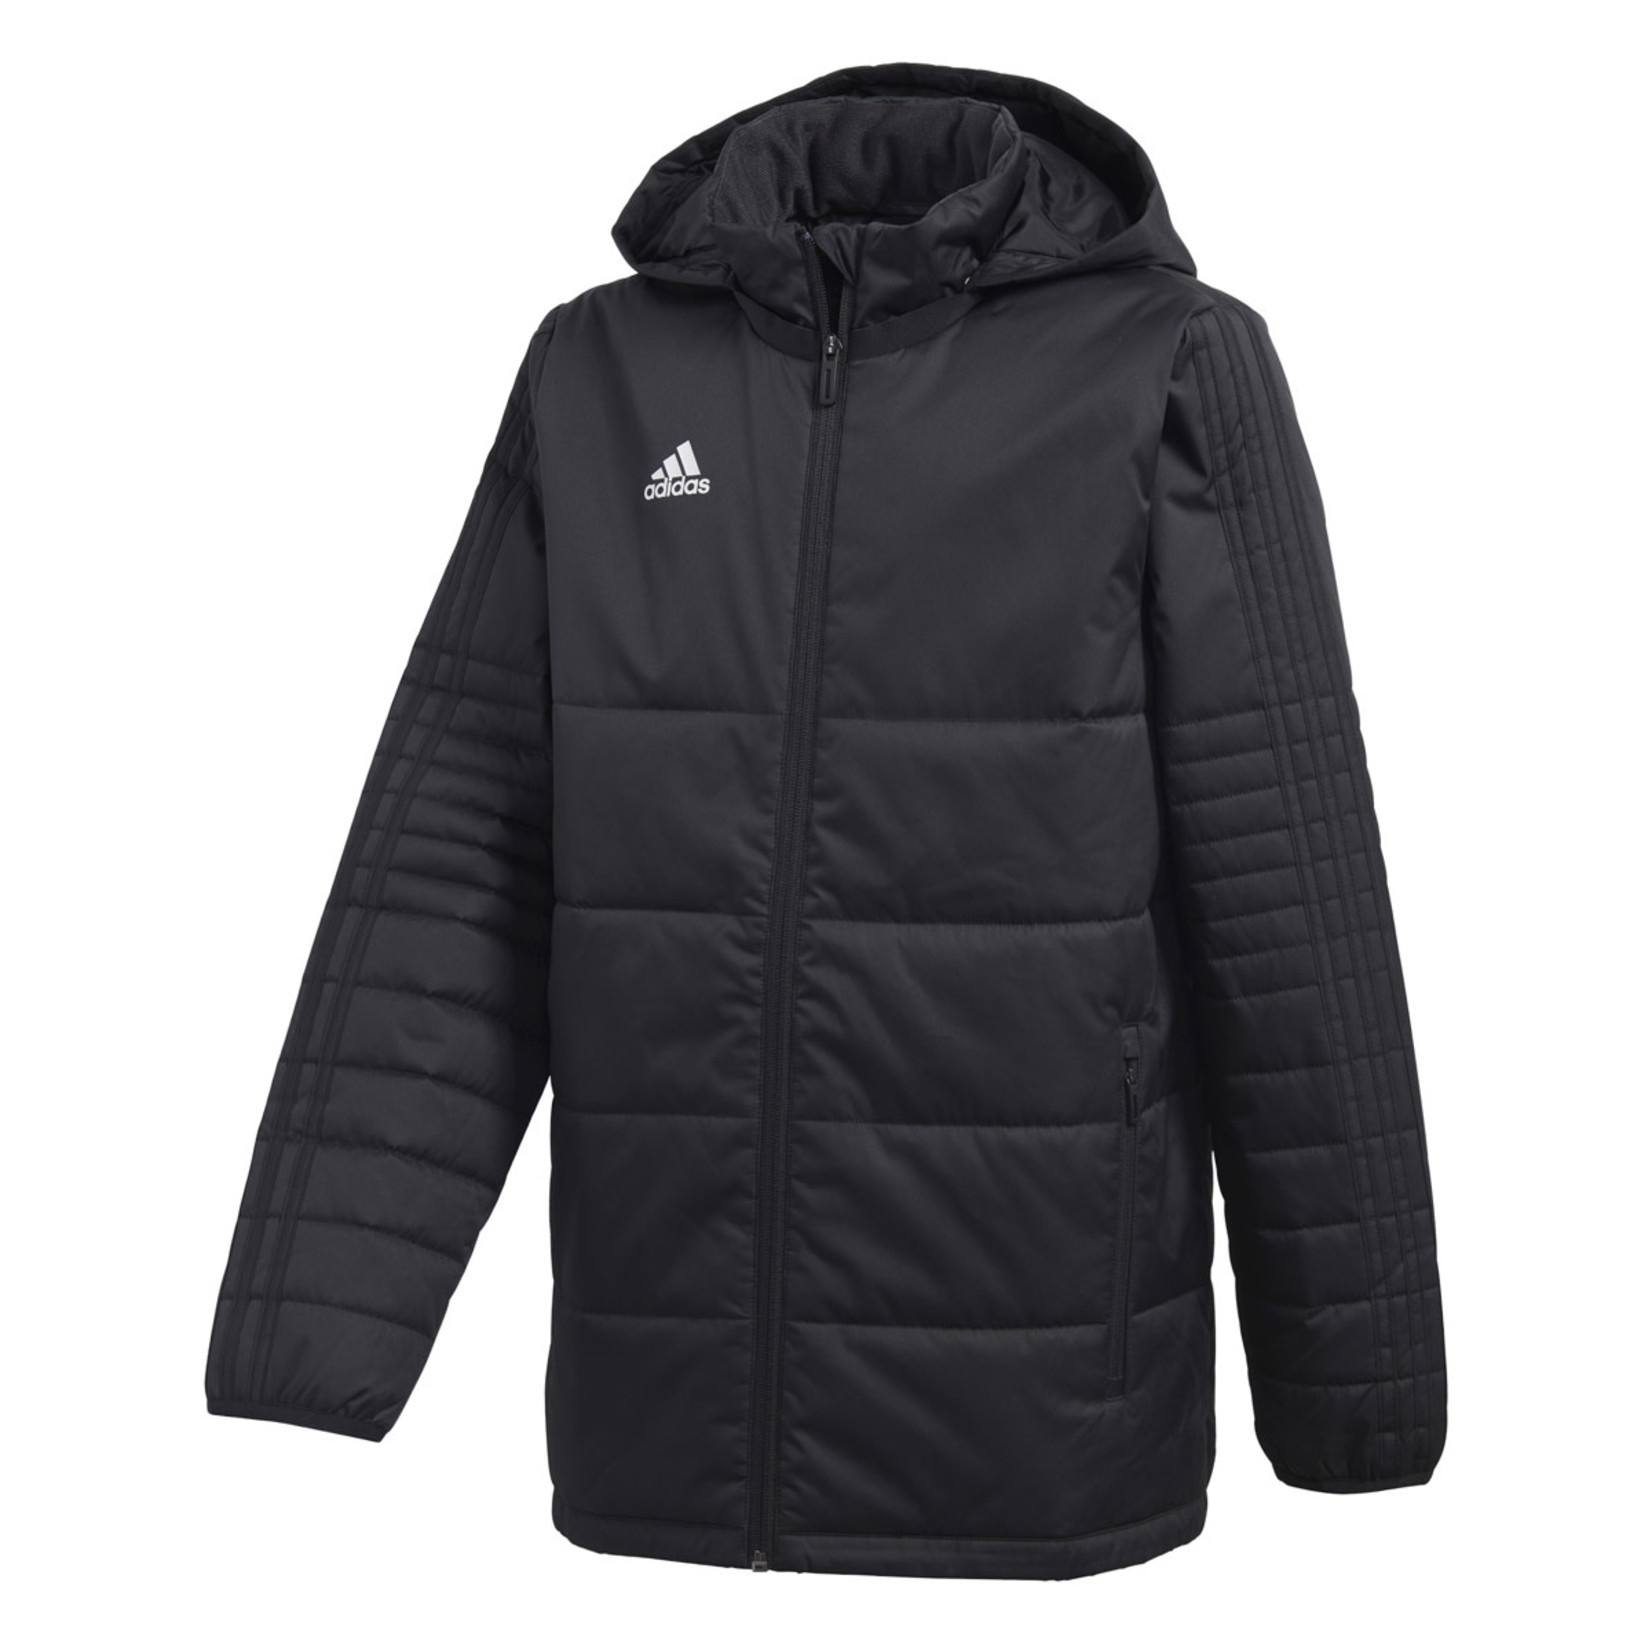 ADIDAS TIRO 17 WINTER JACKET YOUTH